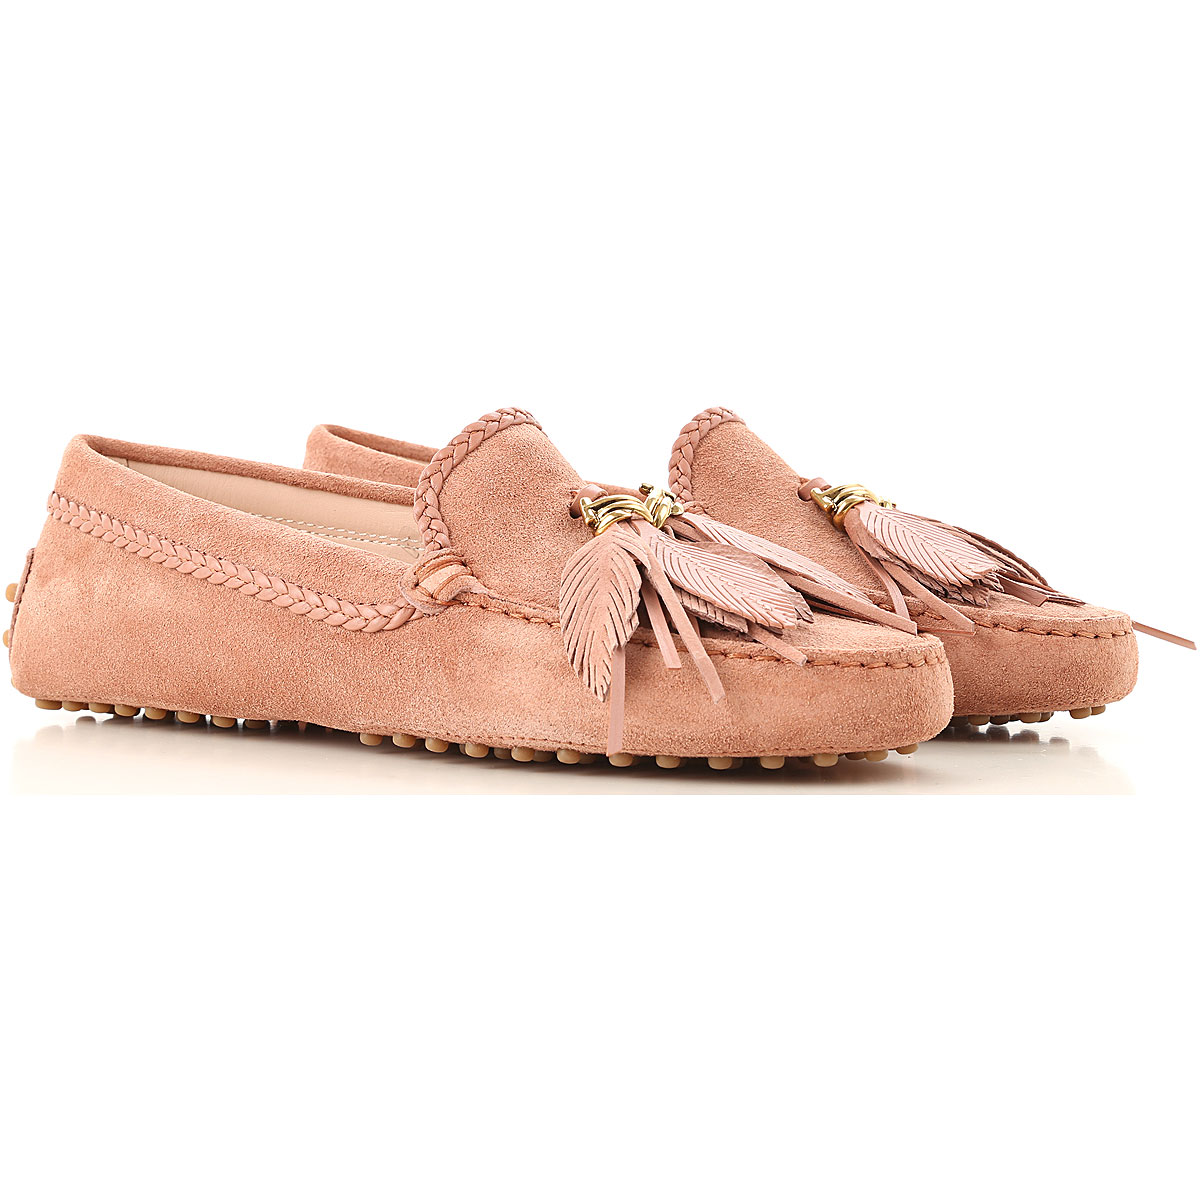 Tods Loafers for Women Dusty Pink USA - GOOFASH